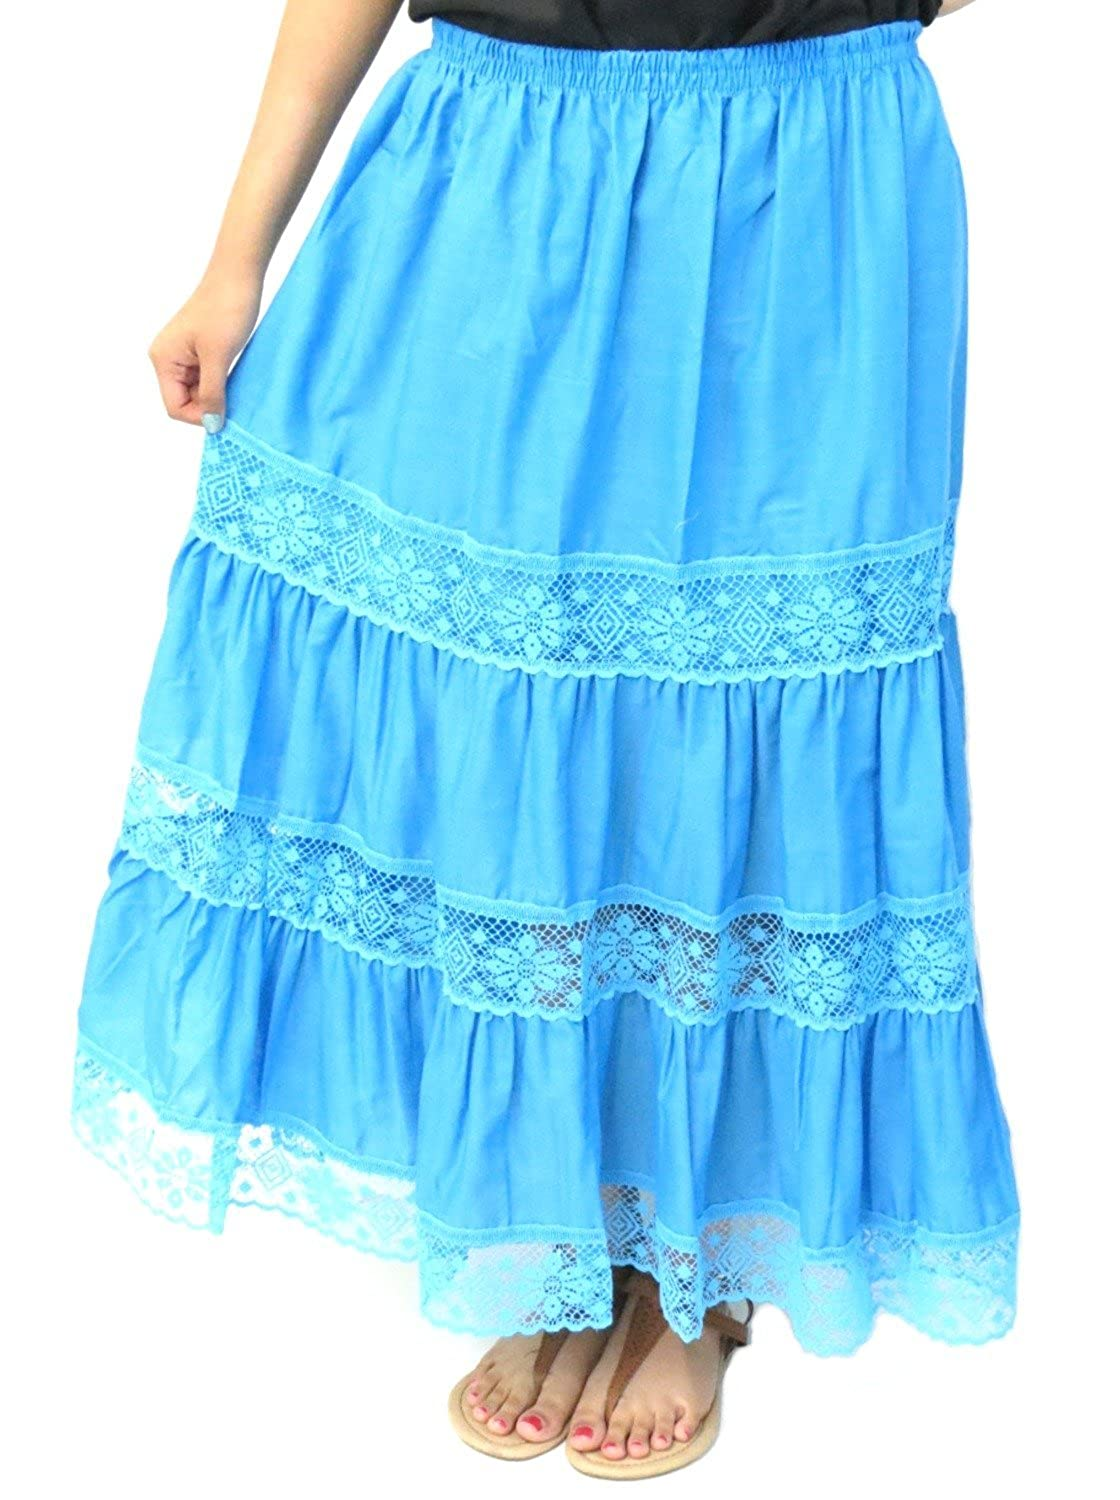 Women's Turquoise Cotton Mexican Lace Skirt - DeluxeAdultCostumes.com